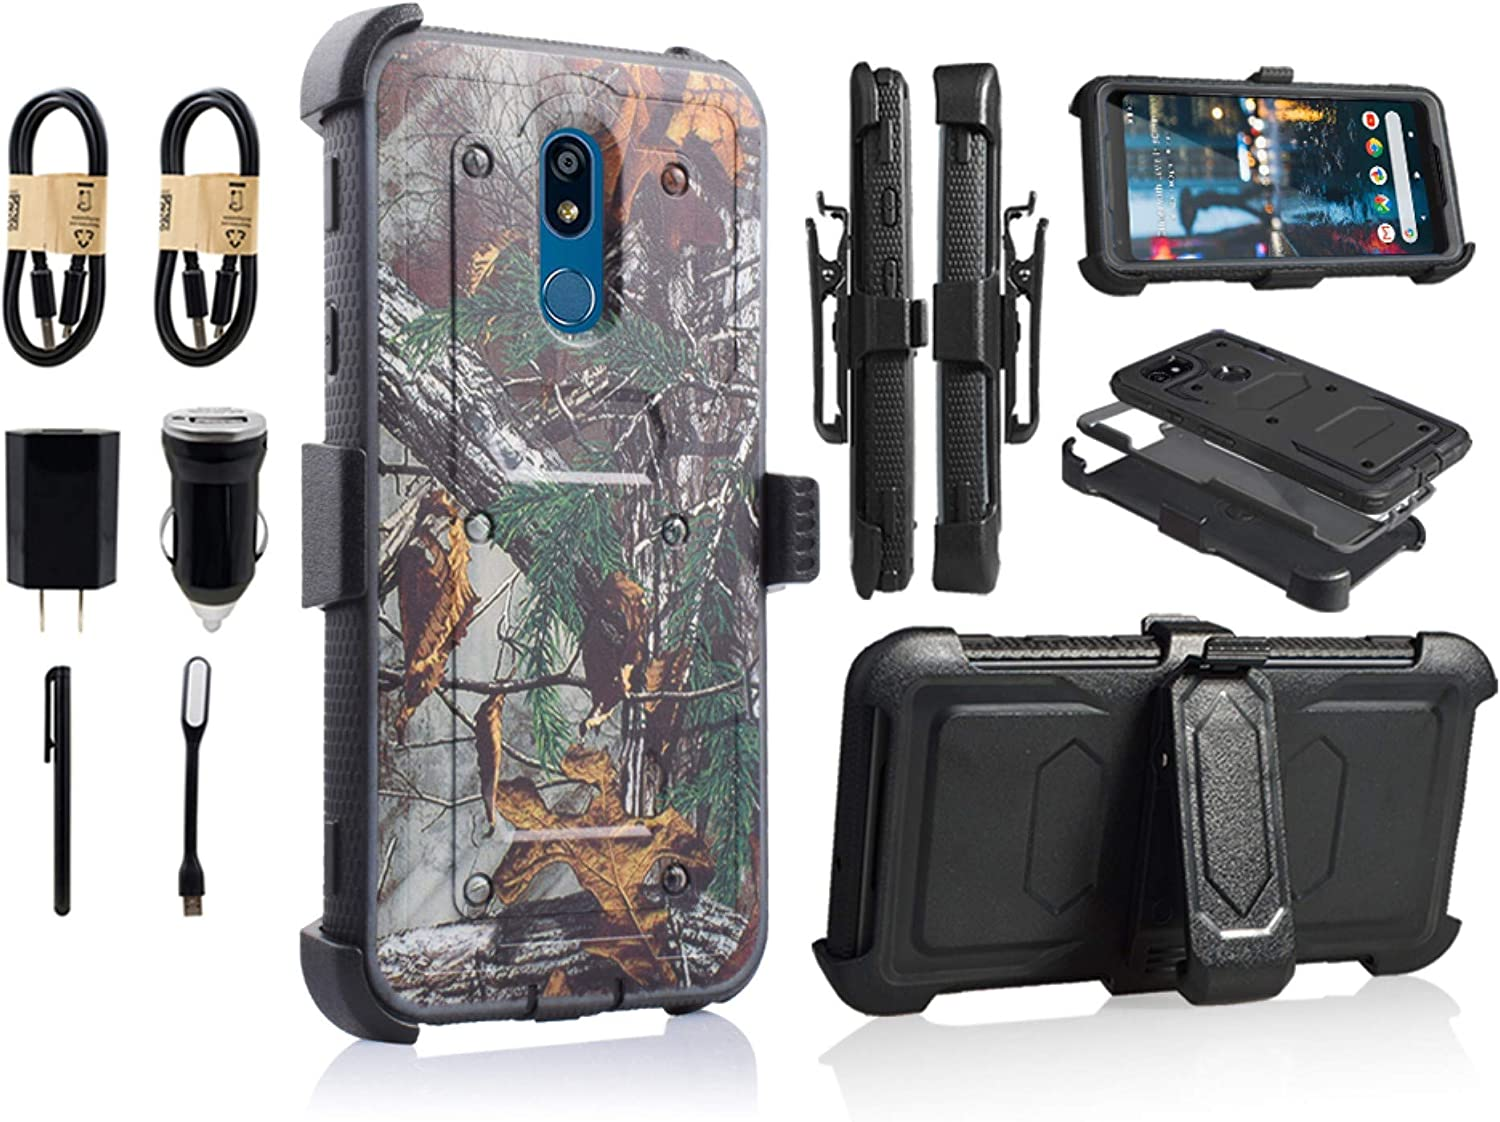 for LG Stylo 5 Case,LG Stylo 5 Phone Case with Kickstand,[Built-in Screen Protector] Heavy Duty Full-Body Armor Swivel Belt Clip Protective Case Cover [Accessory Pack] (Camo)